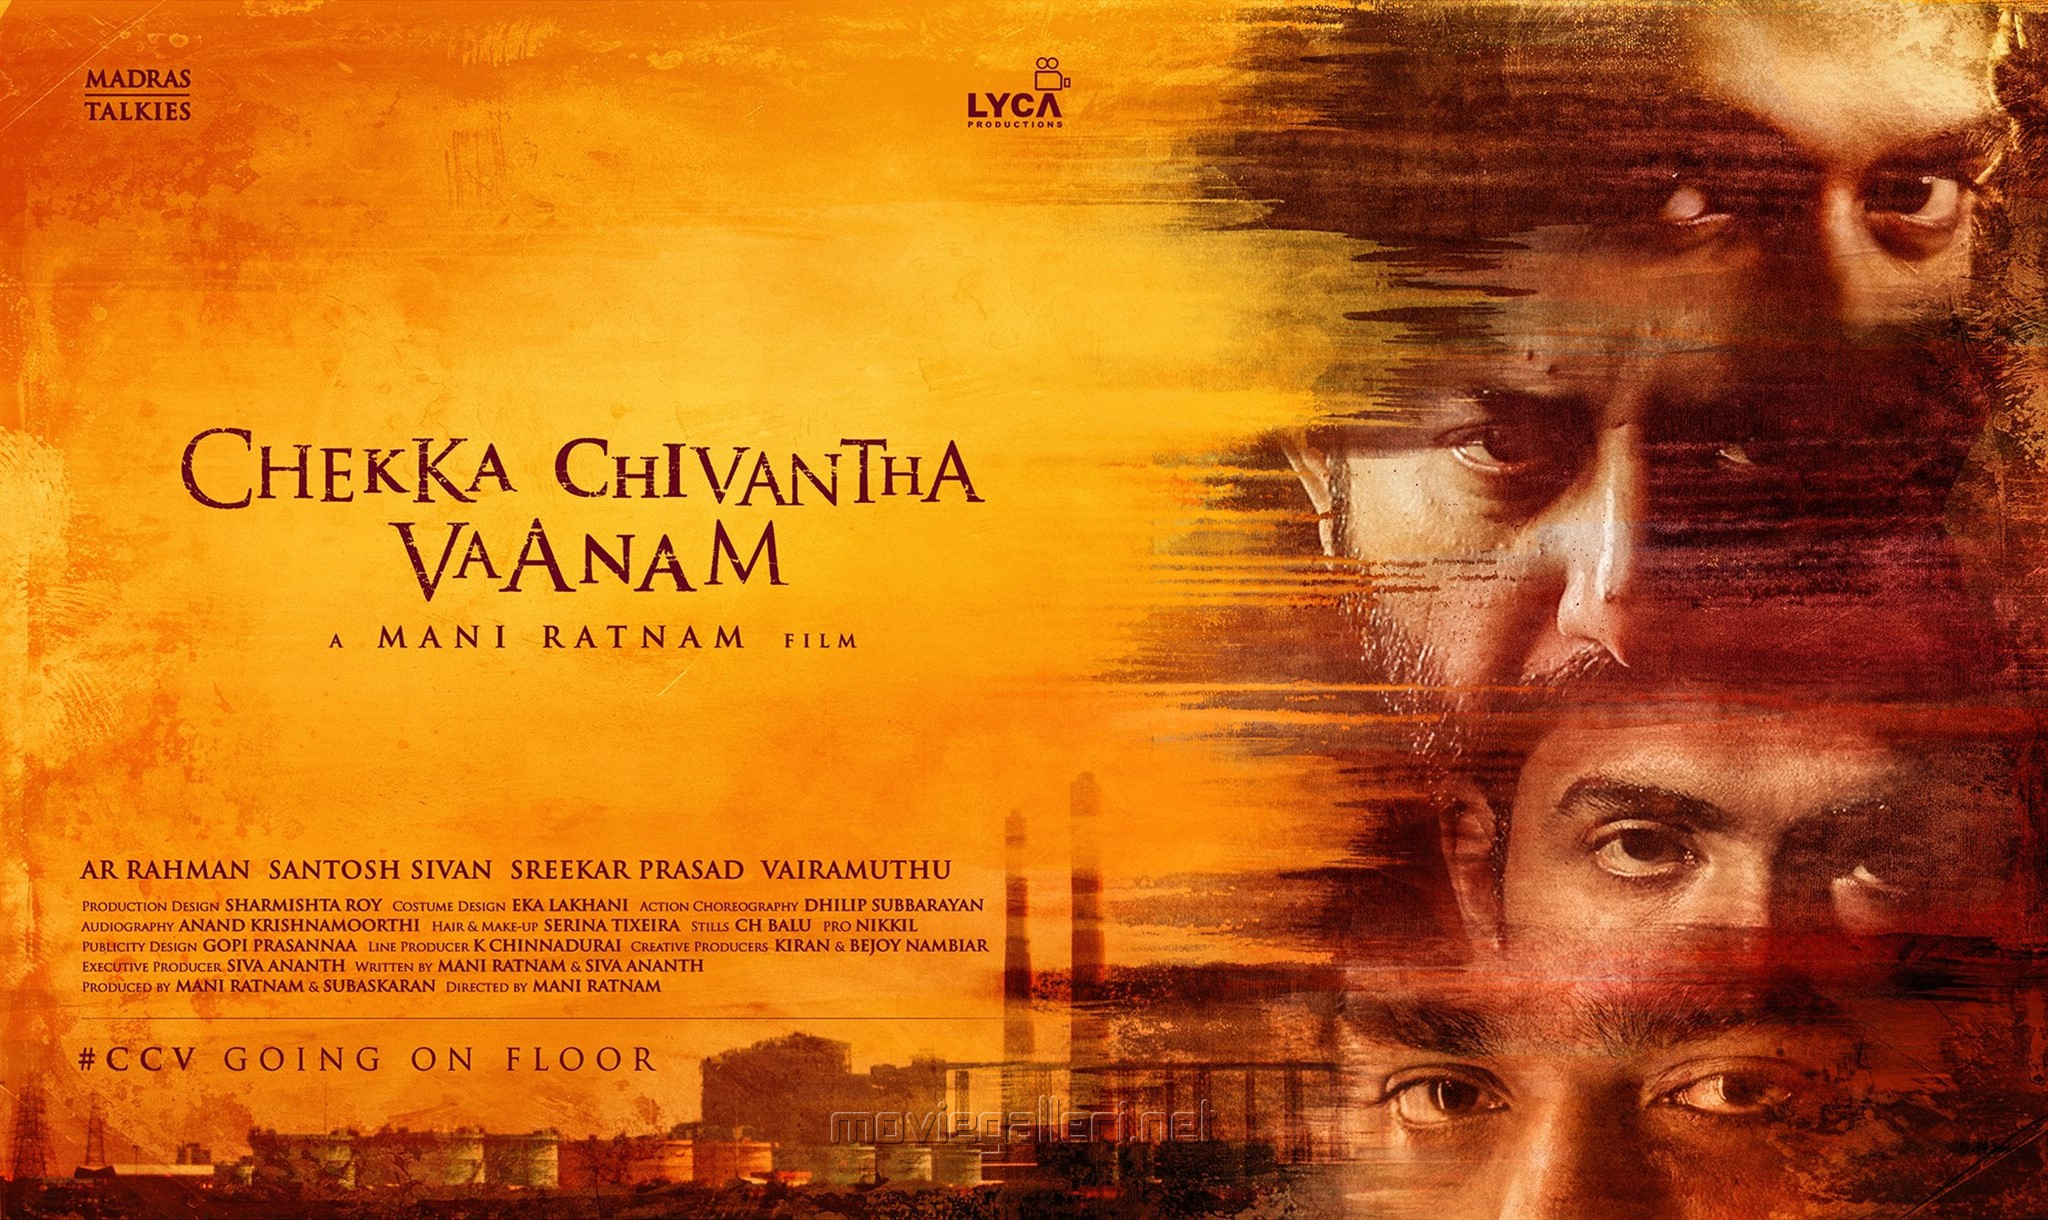 Simbu, Arvind Swami, Vijay Sethupathi, Arun Vijay in Chekka Chivantha Vaanam Movie Going on Floor 12th February